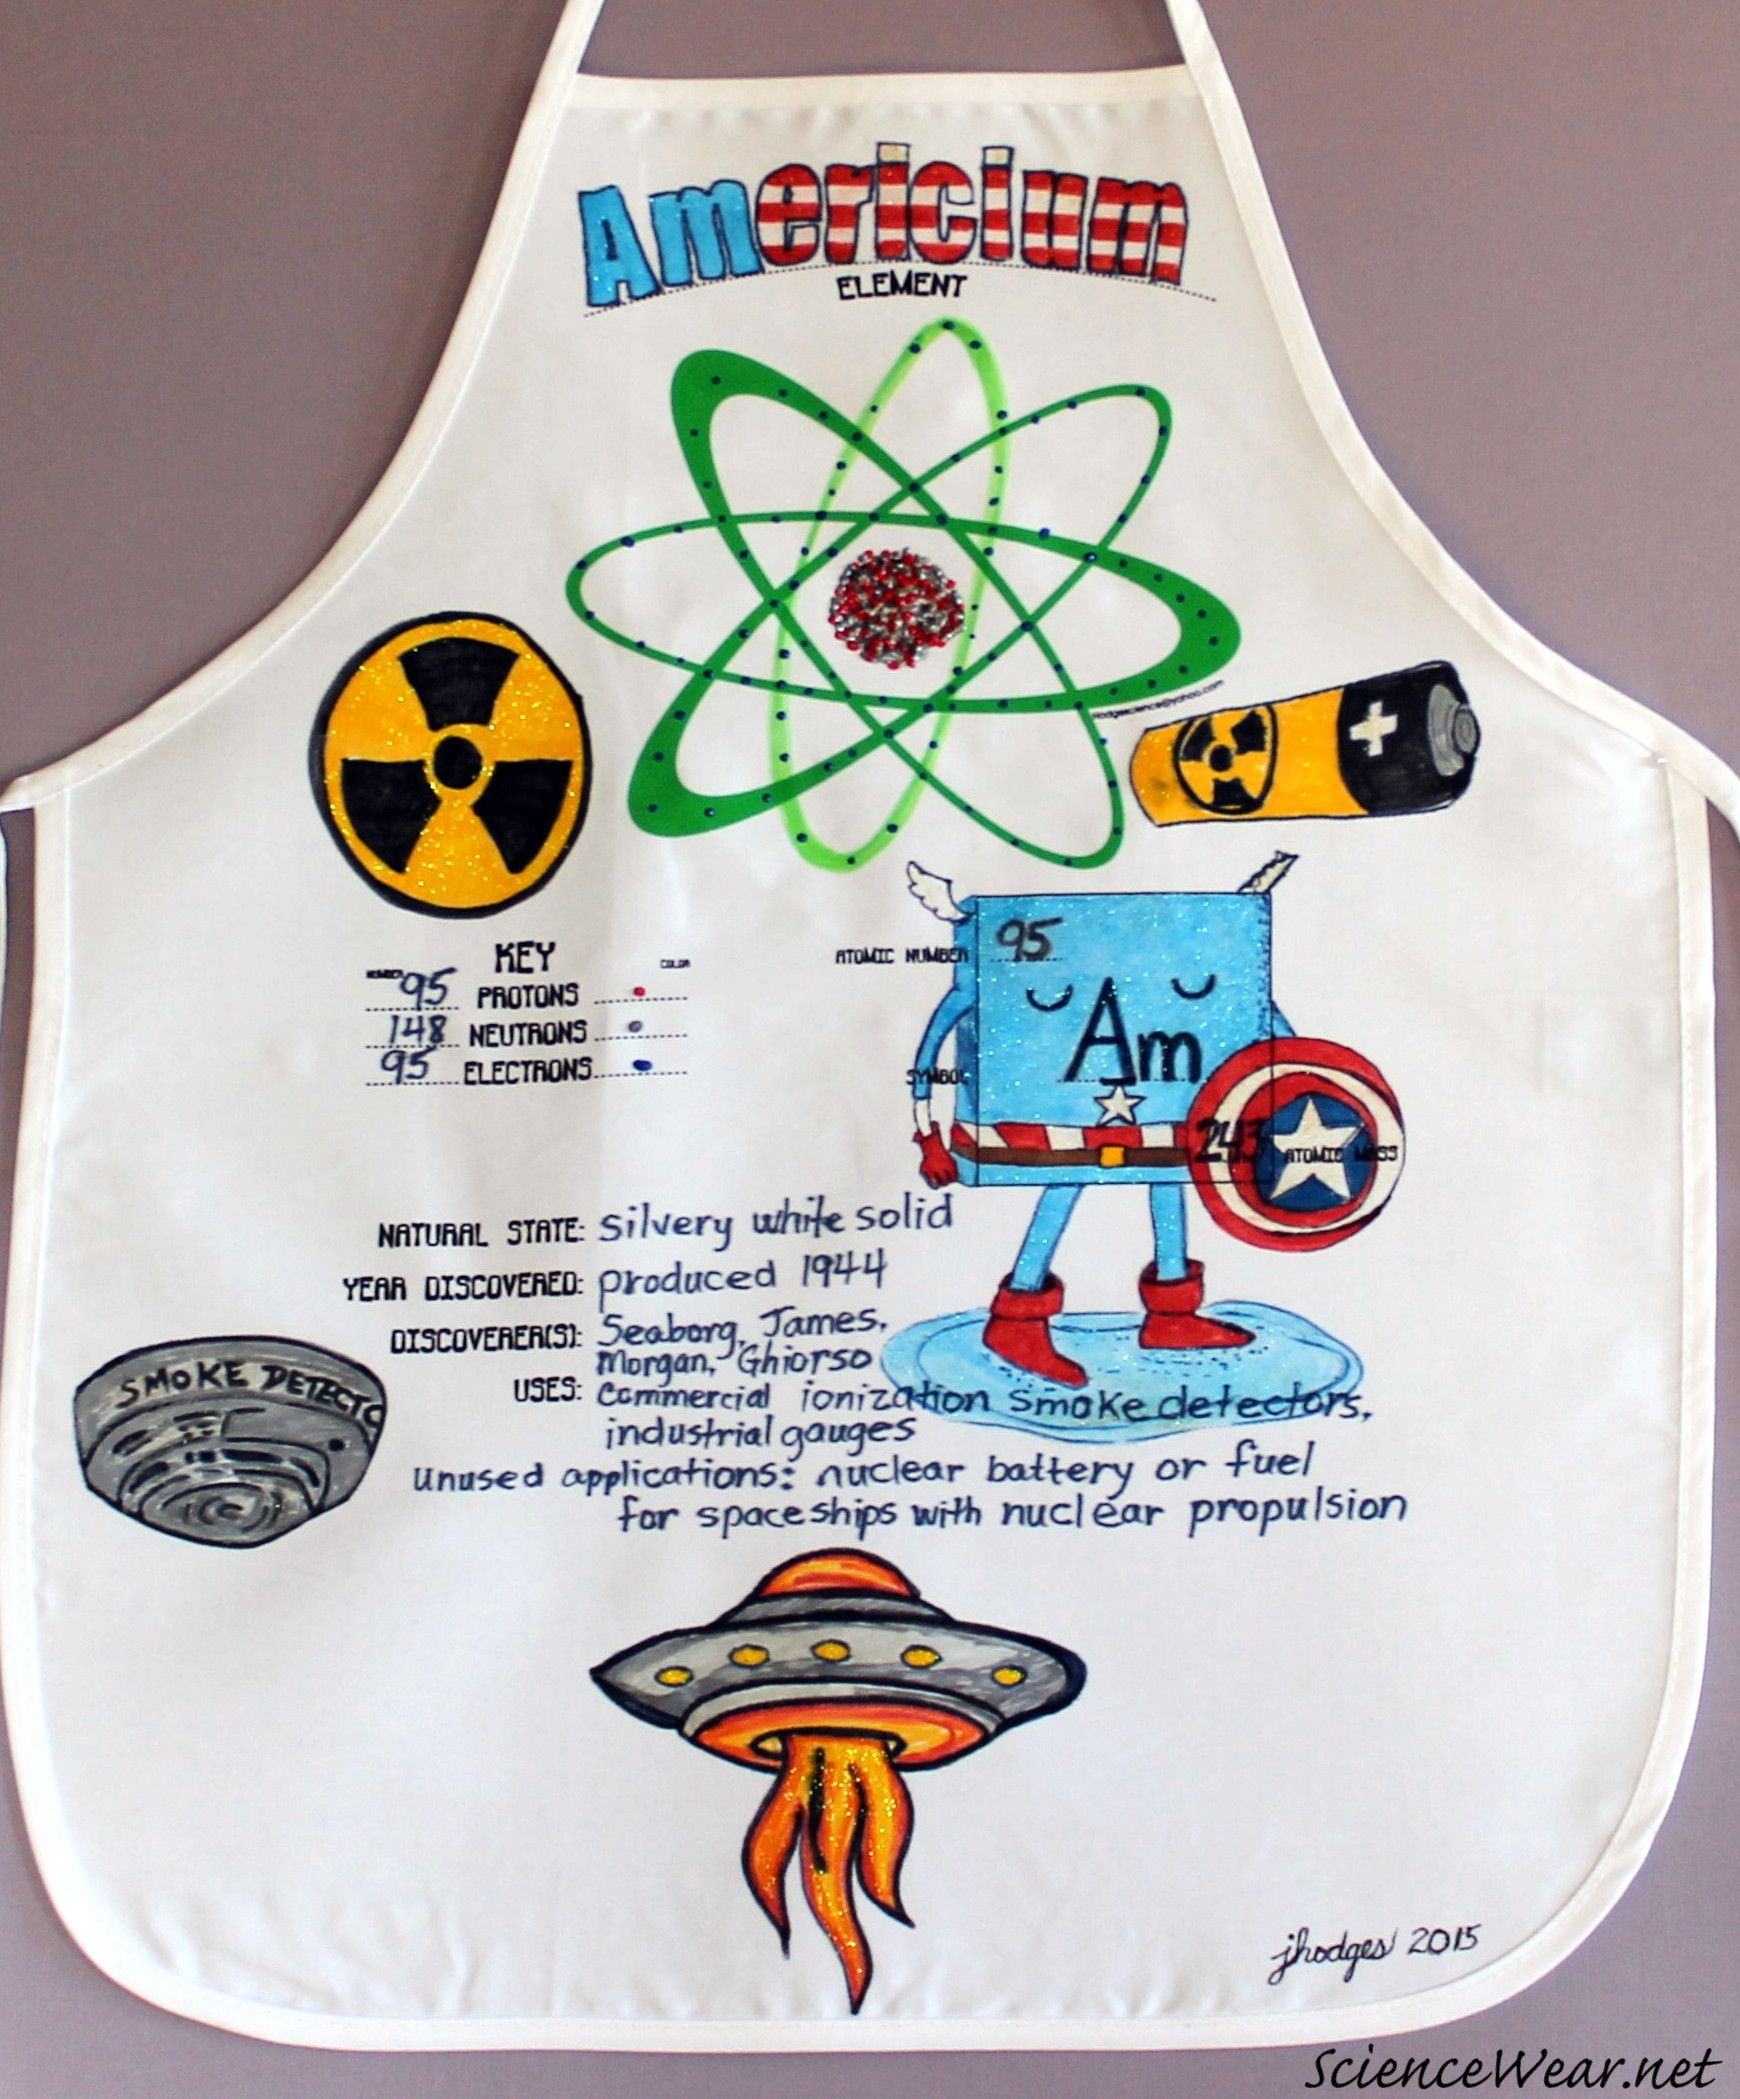 Element 95 Is Radioactive Americium Wearable Science Project For Smoke Detector Circuit Board The Classroom Only Need Fabric Markers And Clip Art Directions On Link